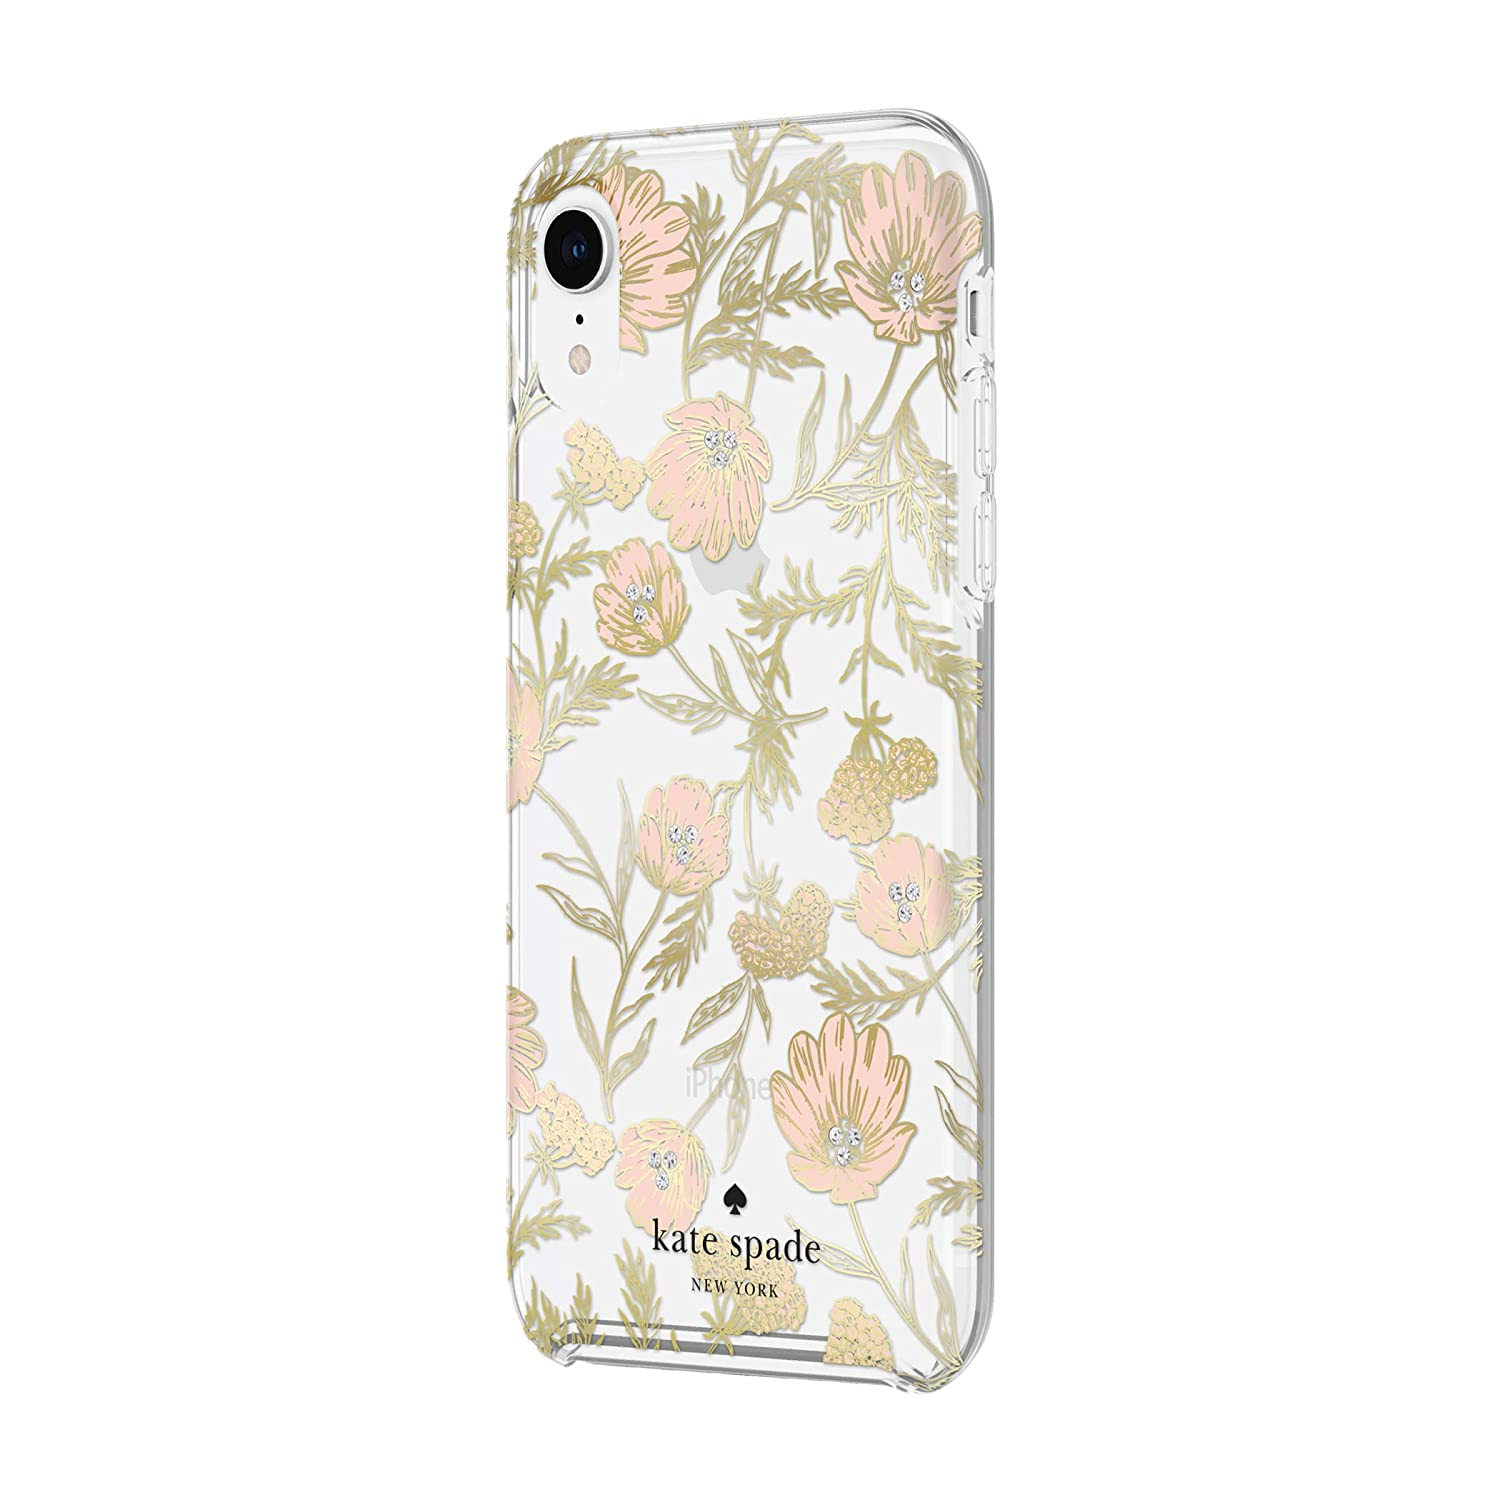 differently ab23f 37563 Kate Spade New York Phone Case for Apple iPhone XR Protective Phone Cases  with Slim Design Drop Protection and Floral Print, Blossom Pink/Gold with  ...